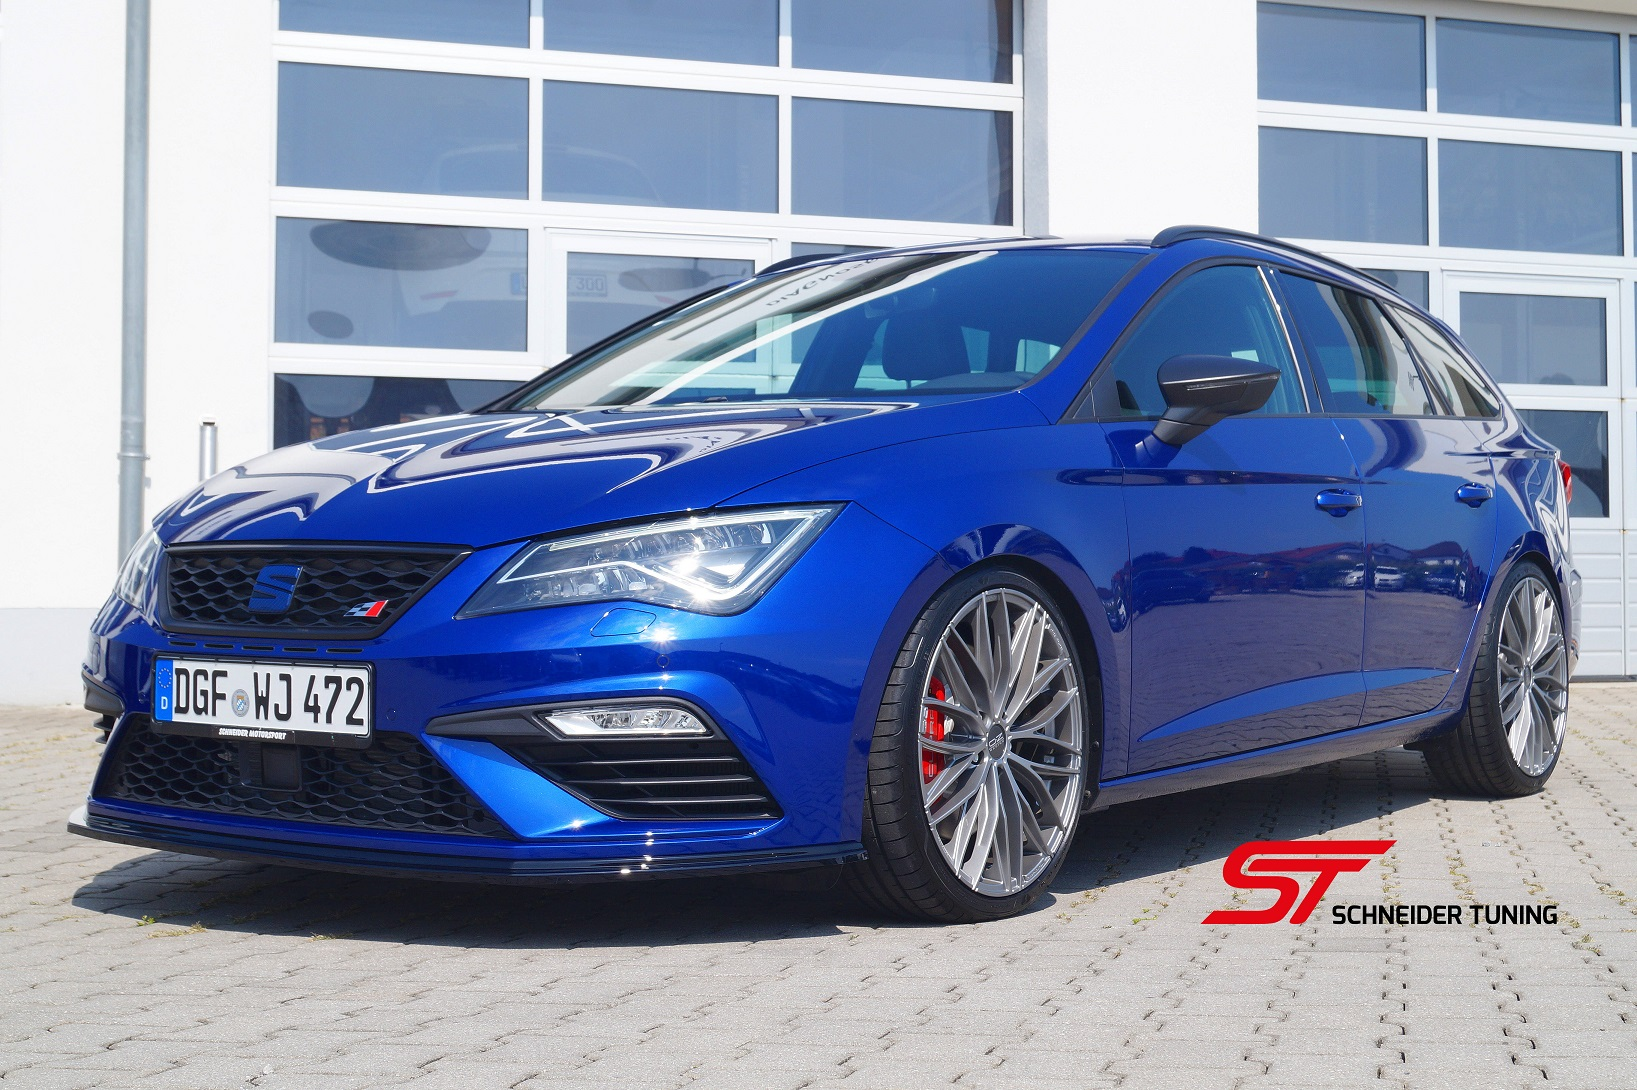 seat leon cupra 4x4 st400 r 2 0 schneider tuning. Black Bedroom Furniture Sets. Home Design Ideas